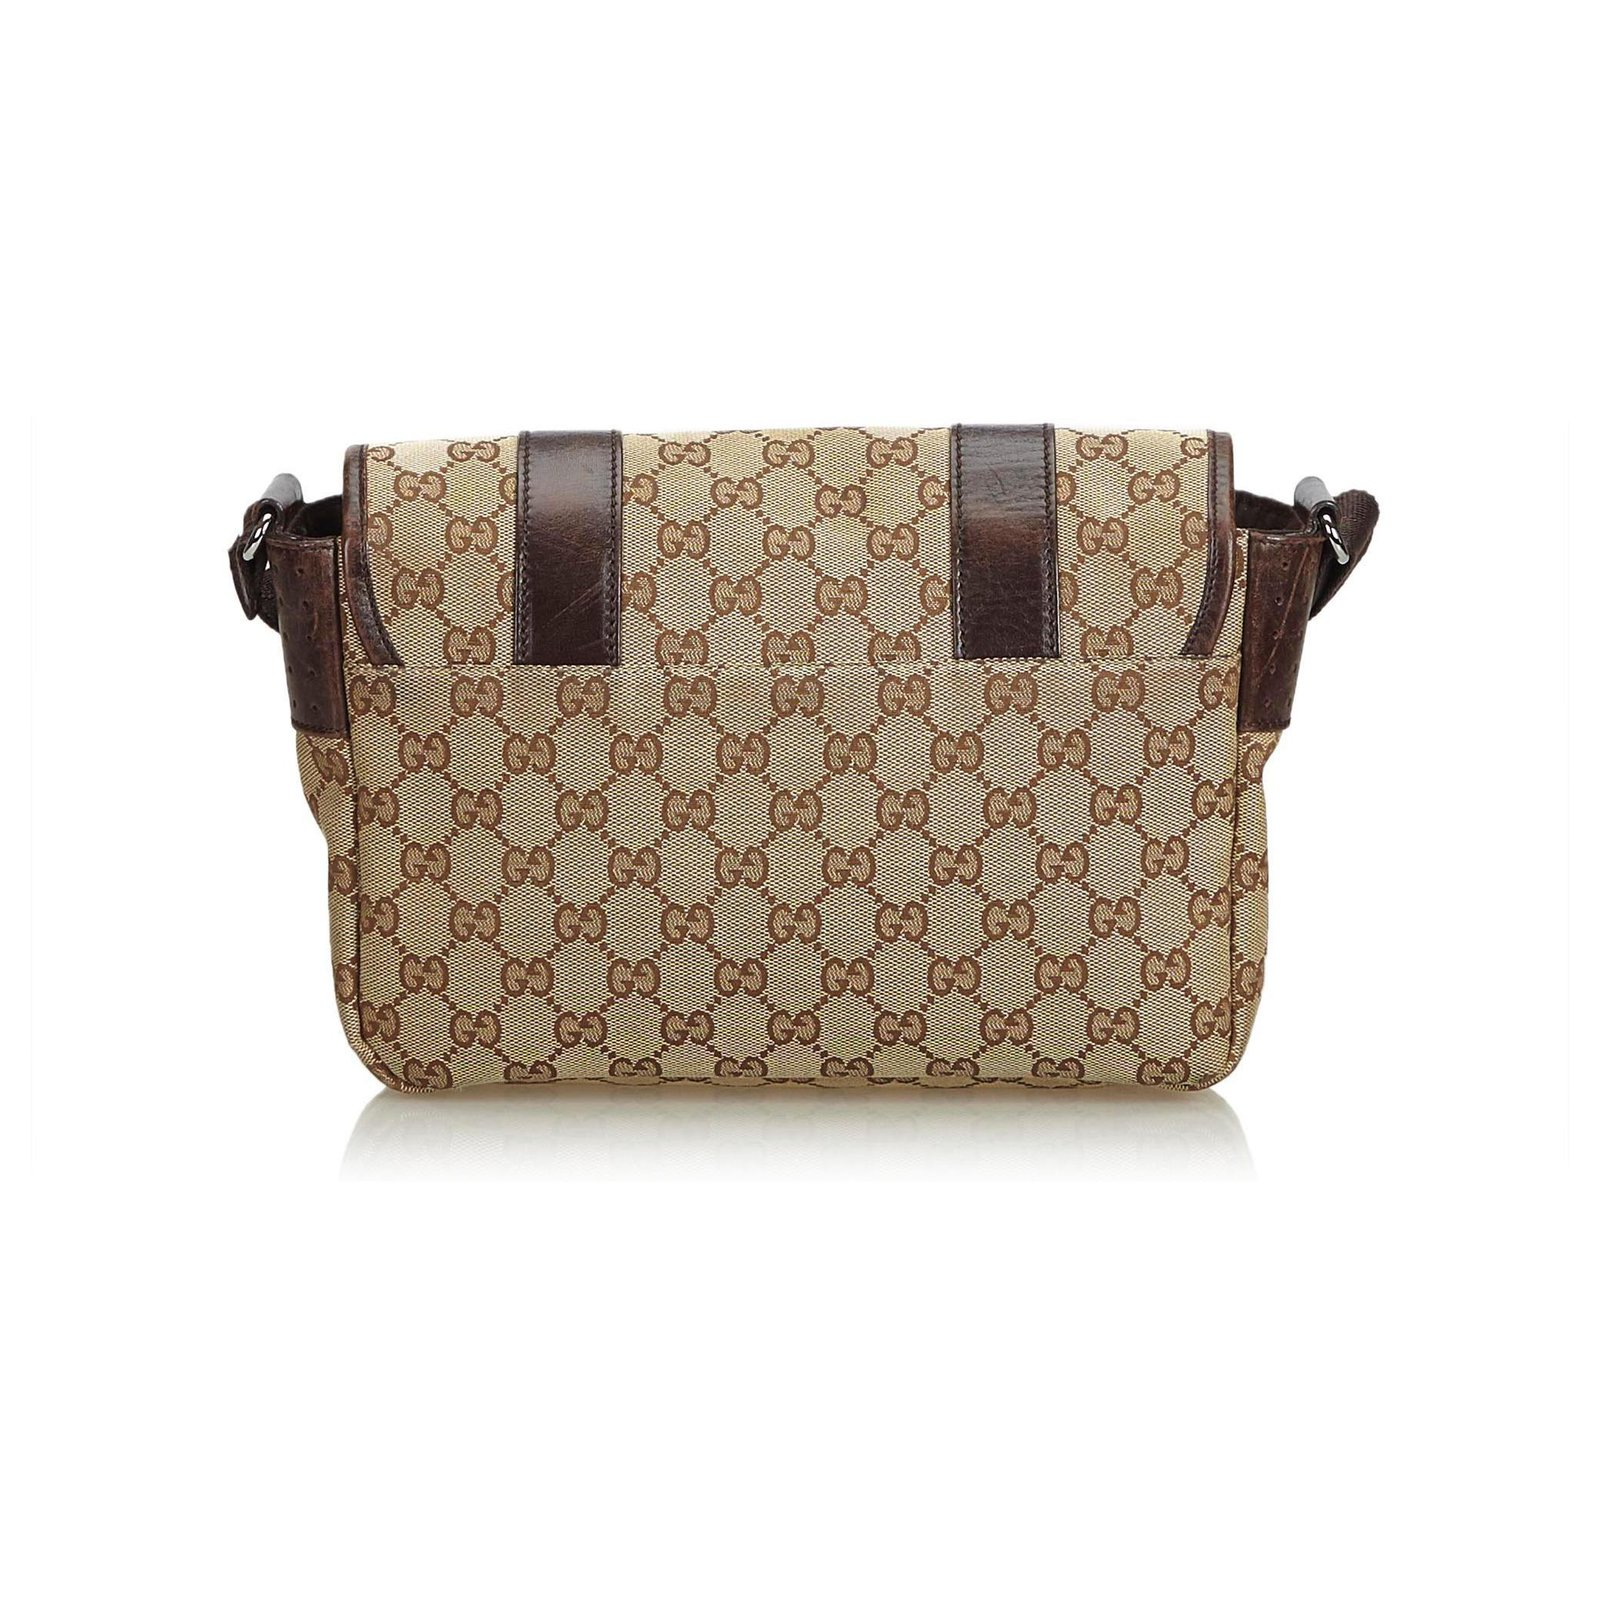 126c6c89a Gucci Gucci Brown GG Jacquard Crossbody Bag Handbags Leather,Other,Cloth  Brown ref.120705 - Joli Closet